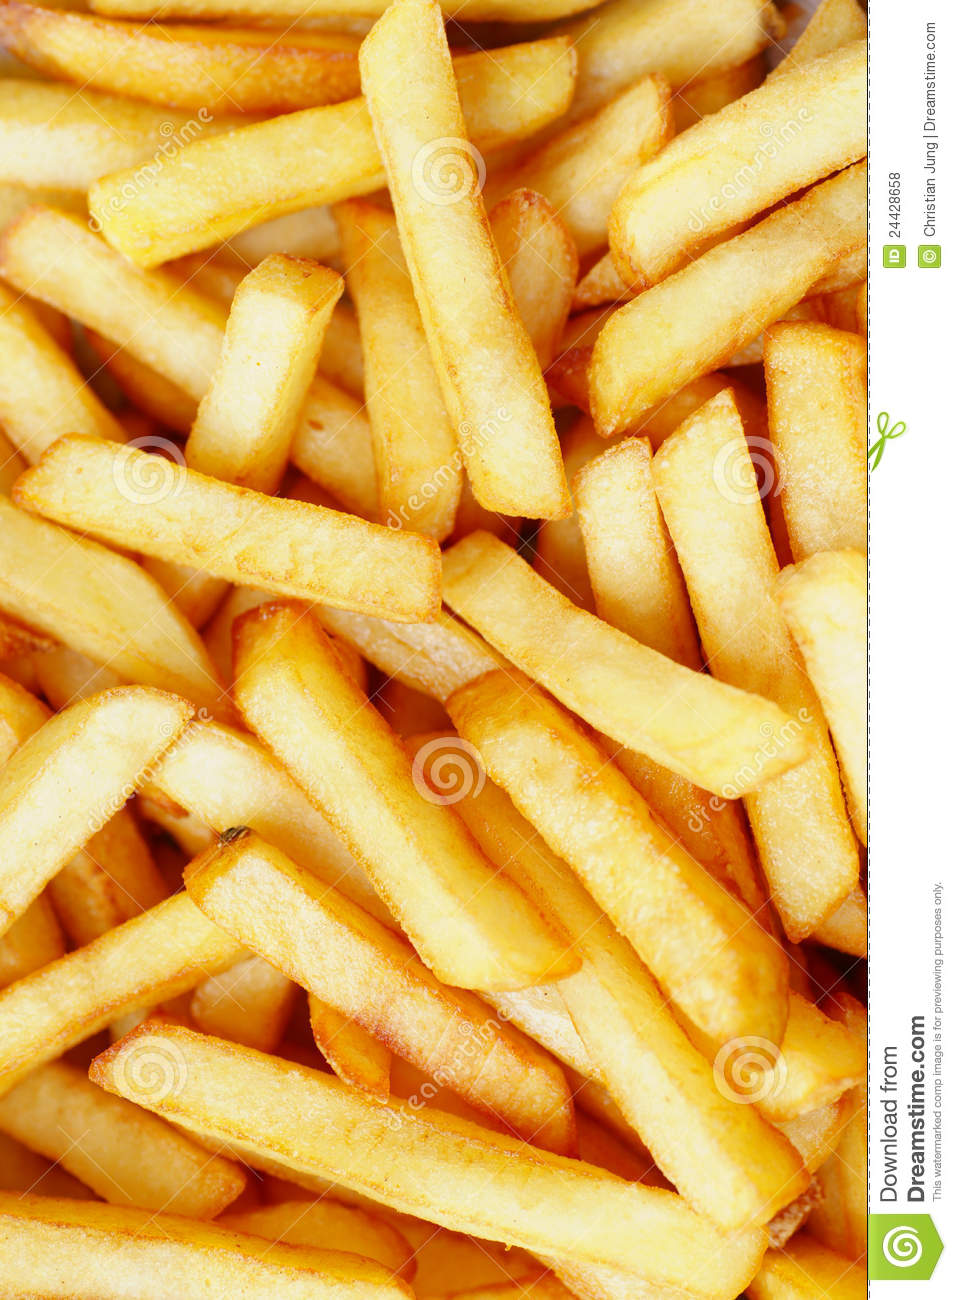 French Fries Royalty Free Stock Photos Image 24428658